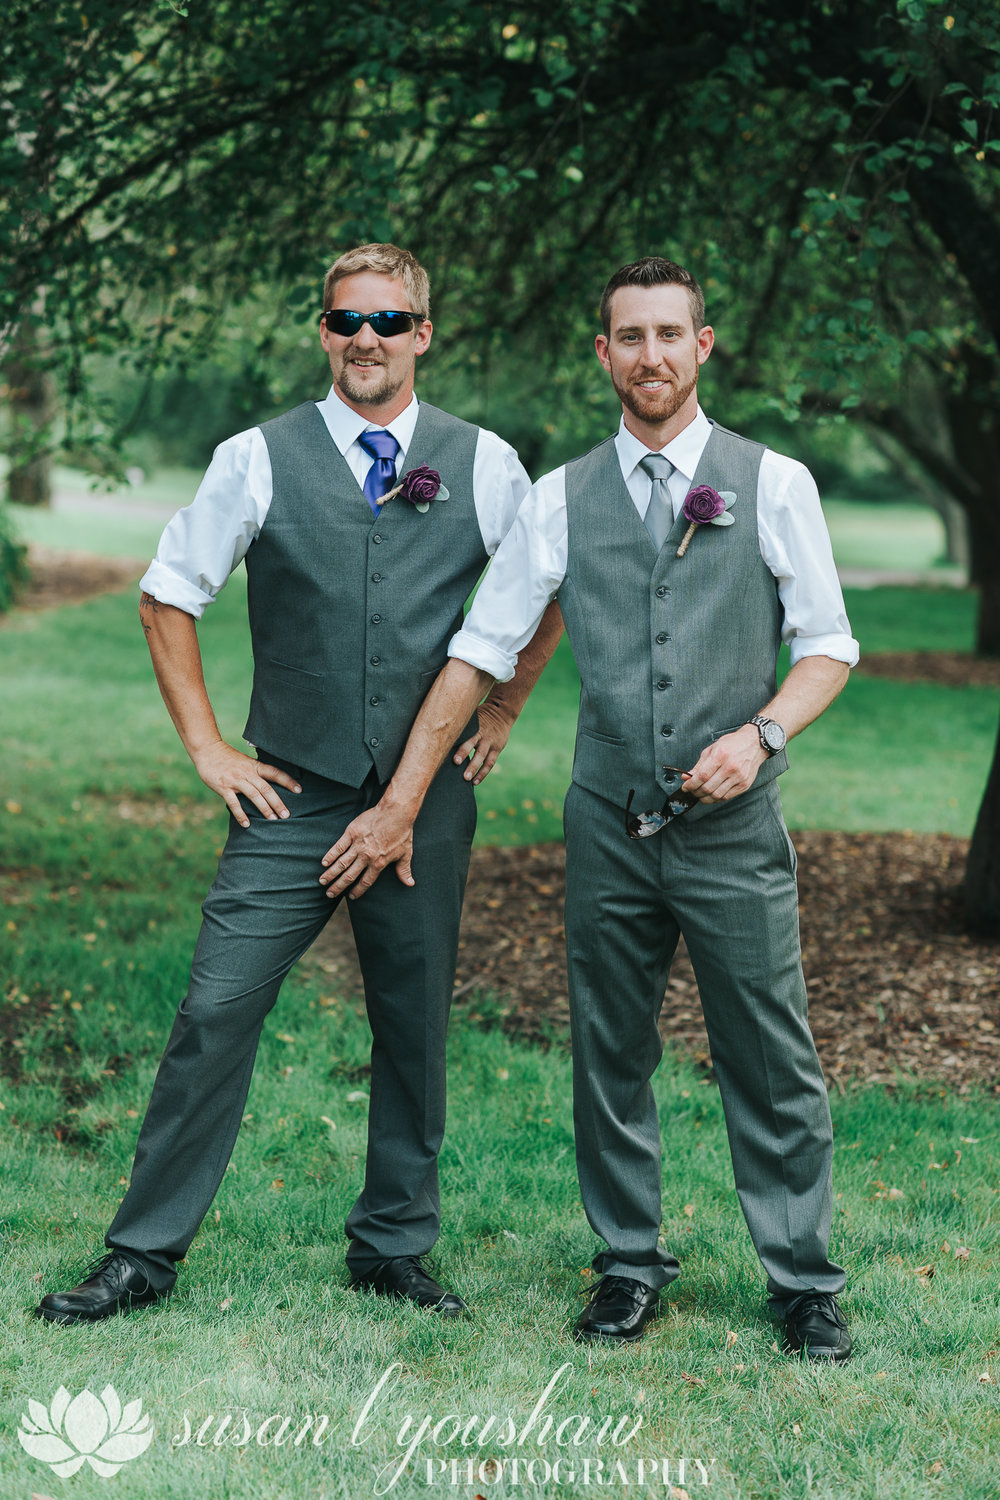 BLOG Kissy and Zane Diehl 07-14-2018 SLY Photography-83.jpg